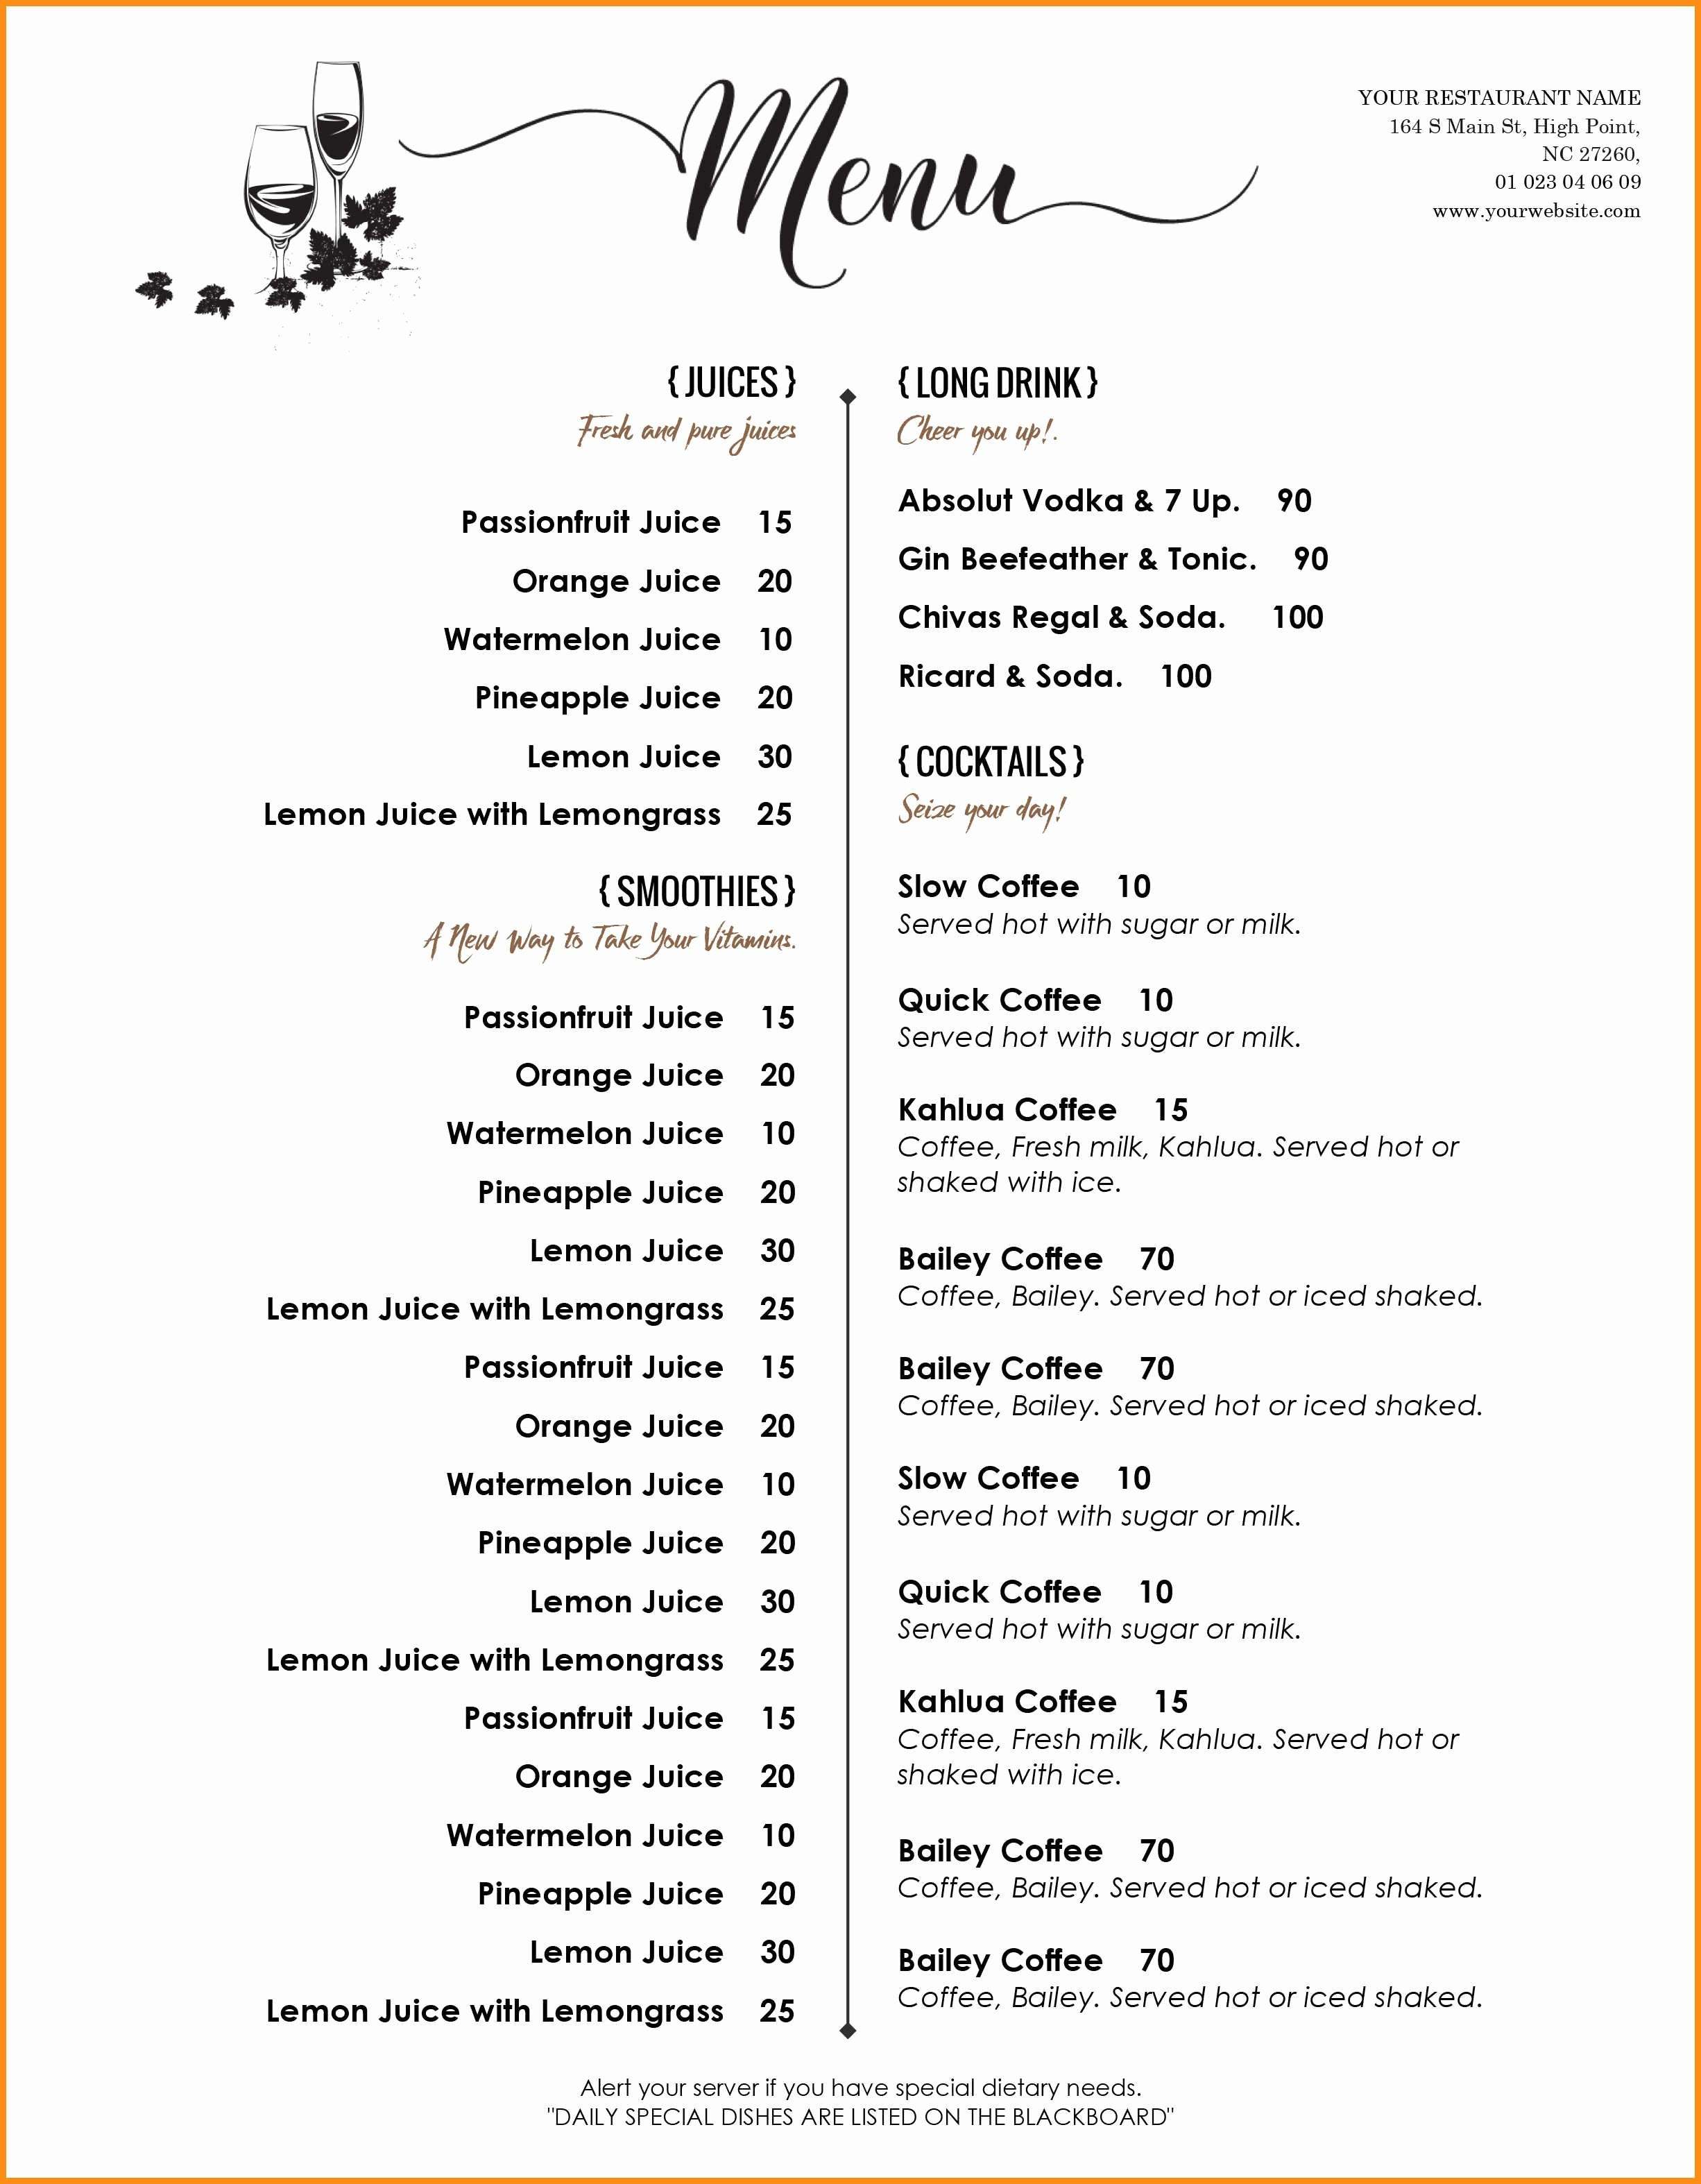 004 Free Printable Drink Menu Template Elegant Templates Word Of - Menu Template Free Printable Word